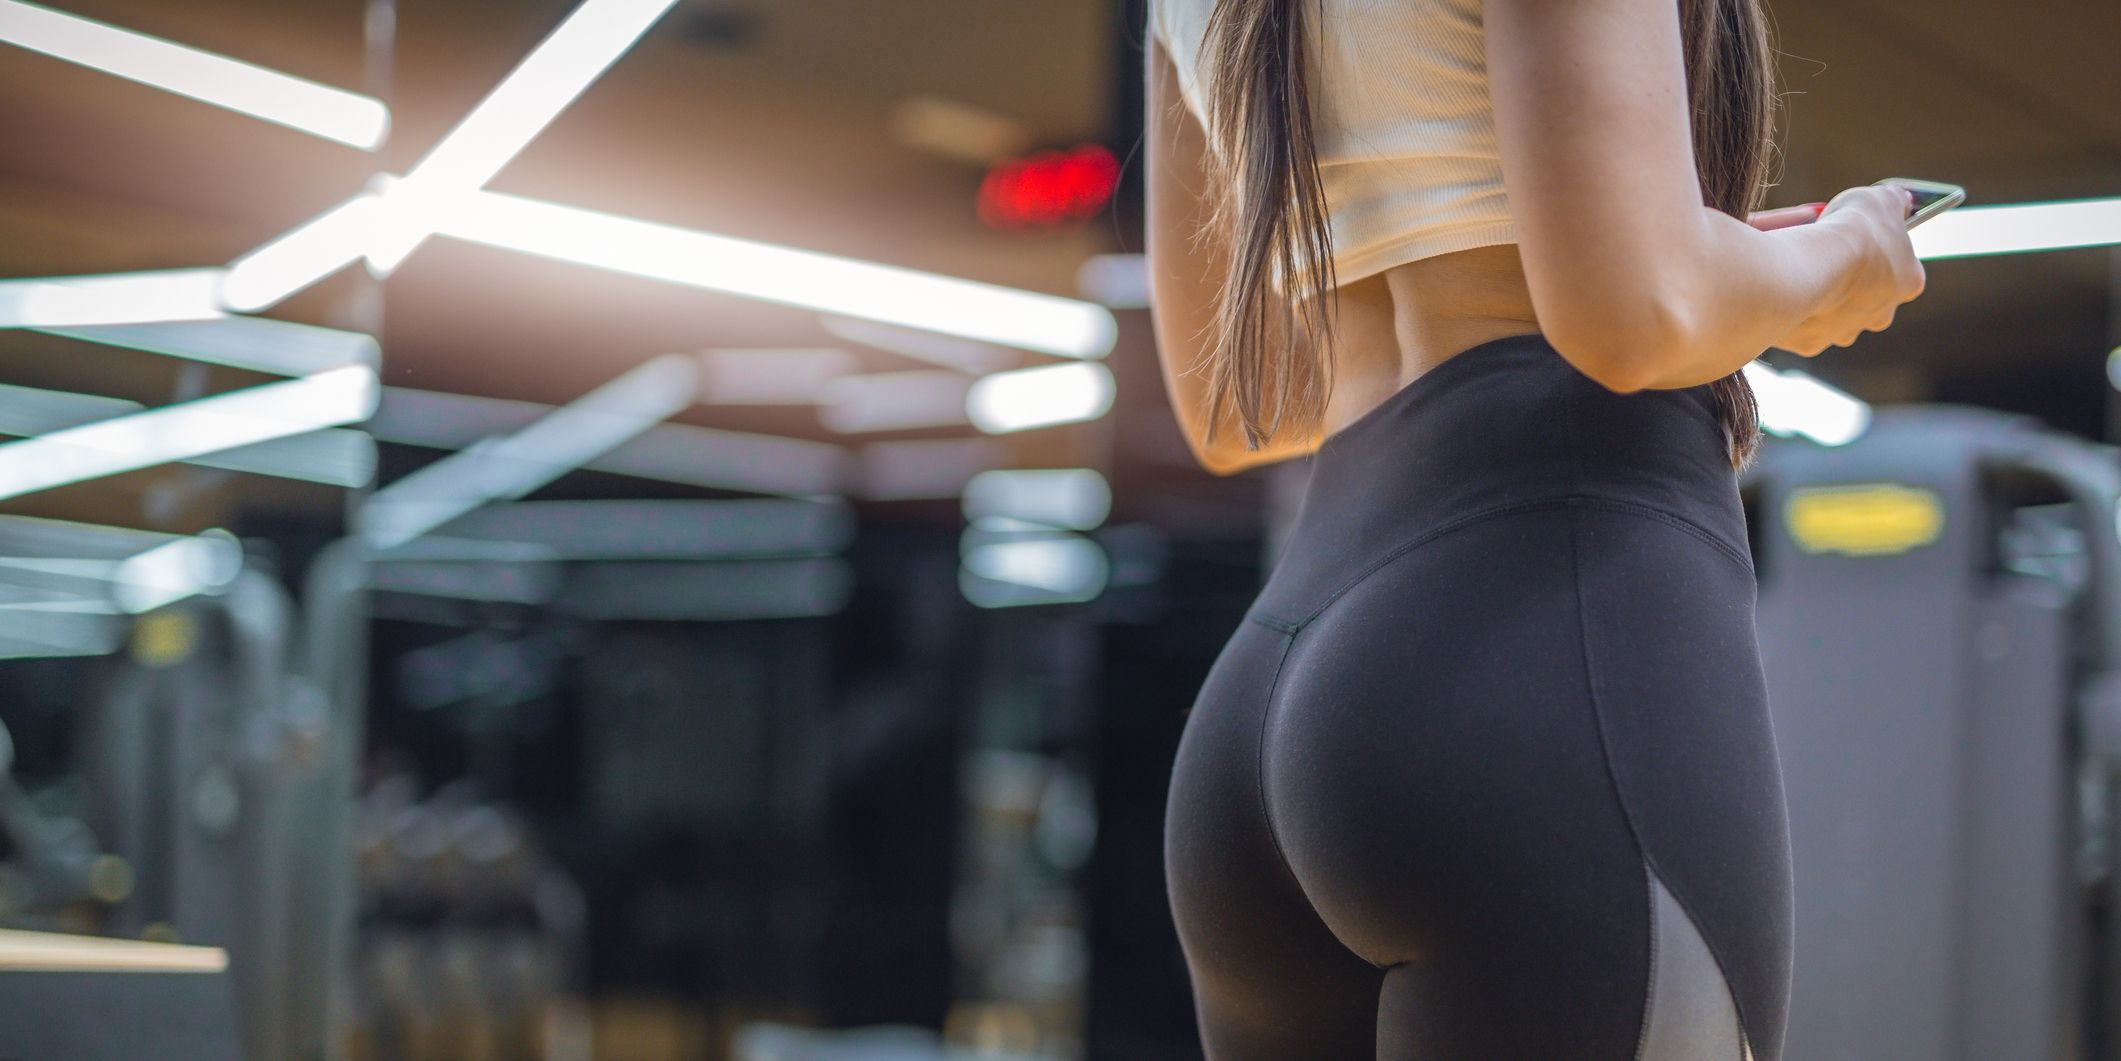 Attractive female in a gym in a hot pants